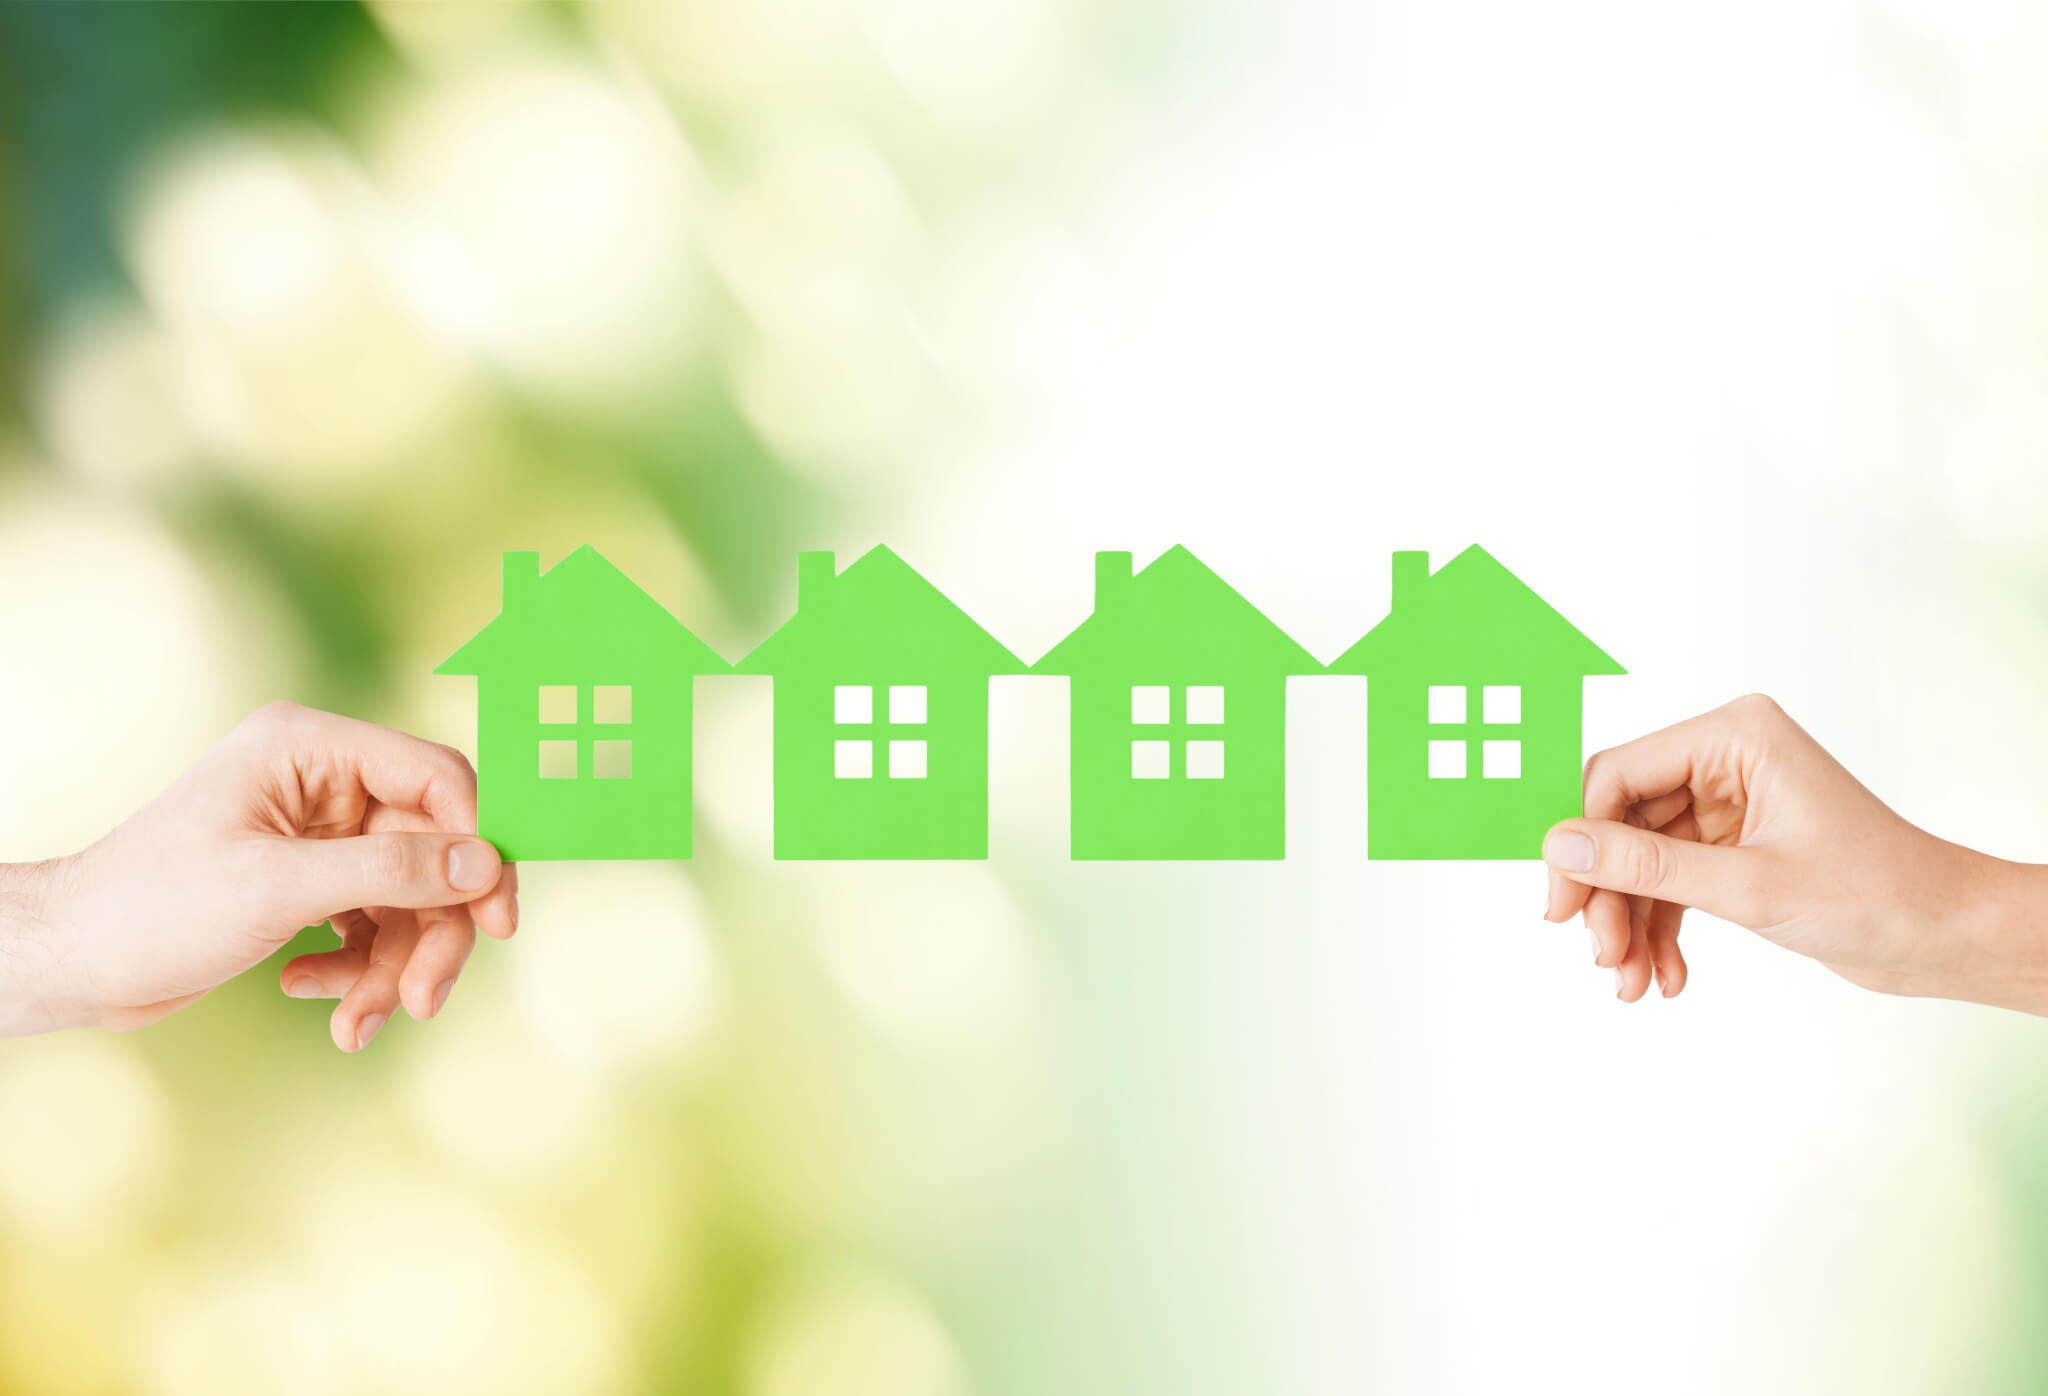 hands holding paper chain of green houses